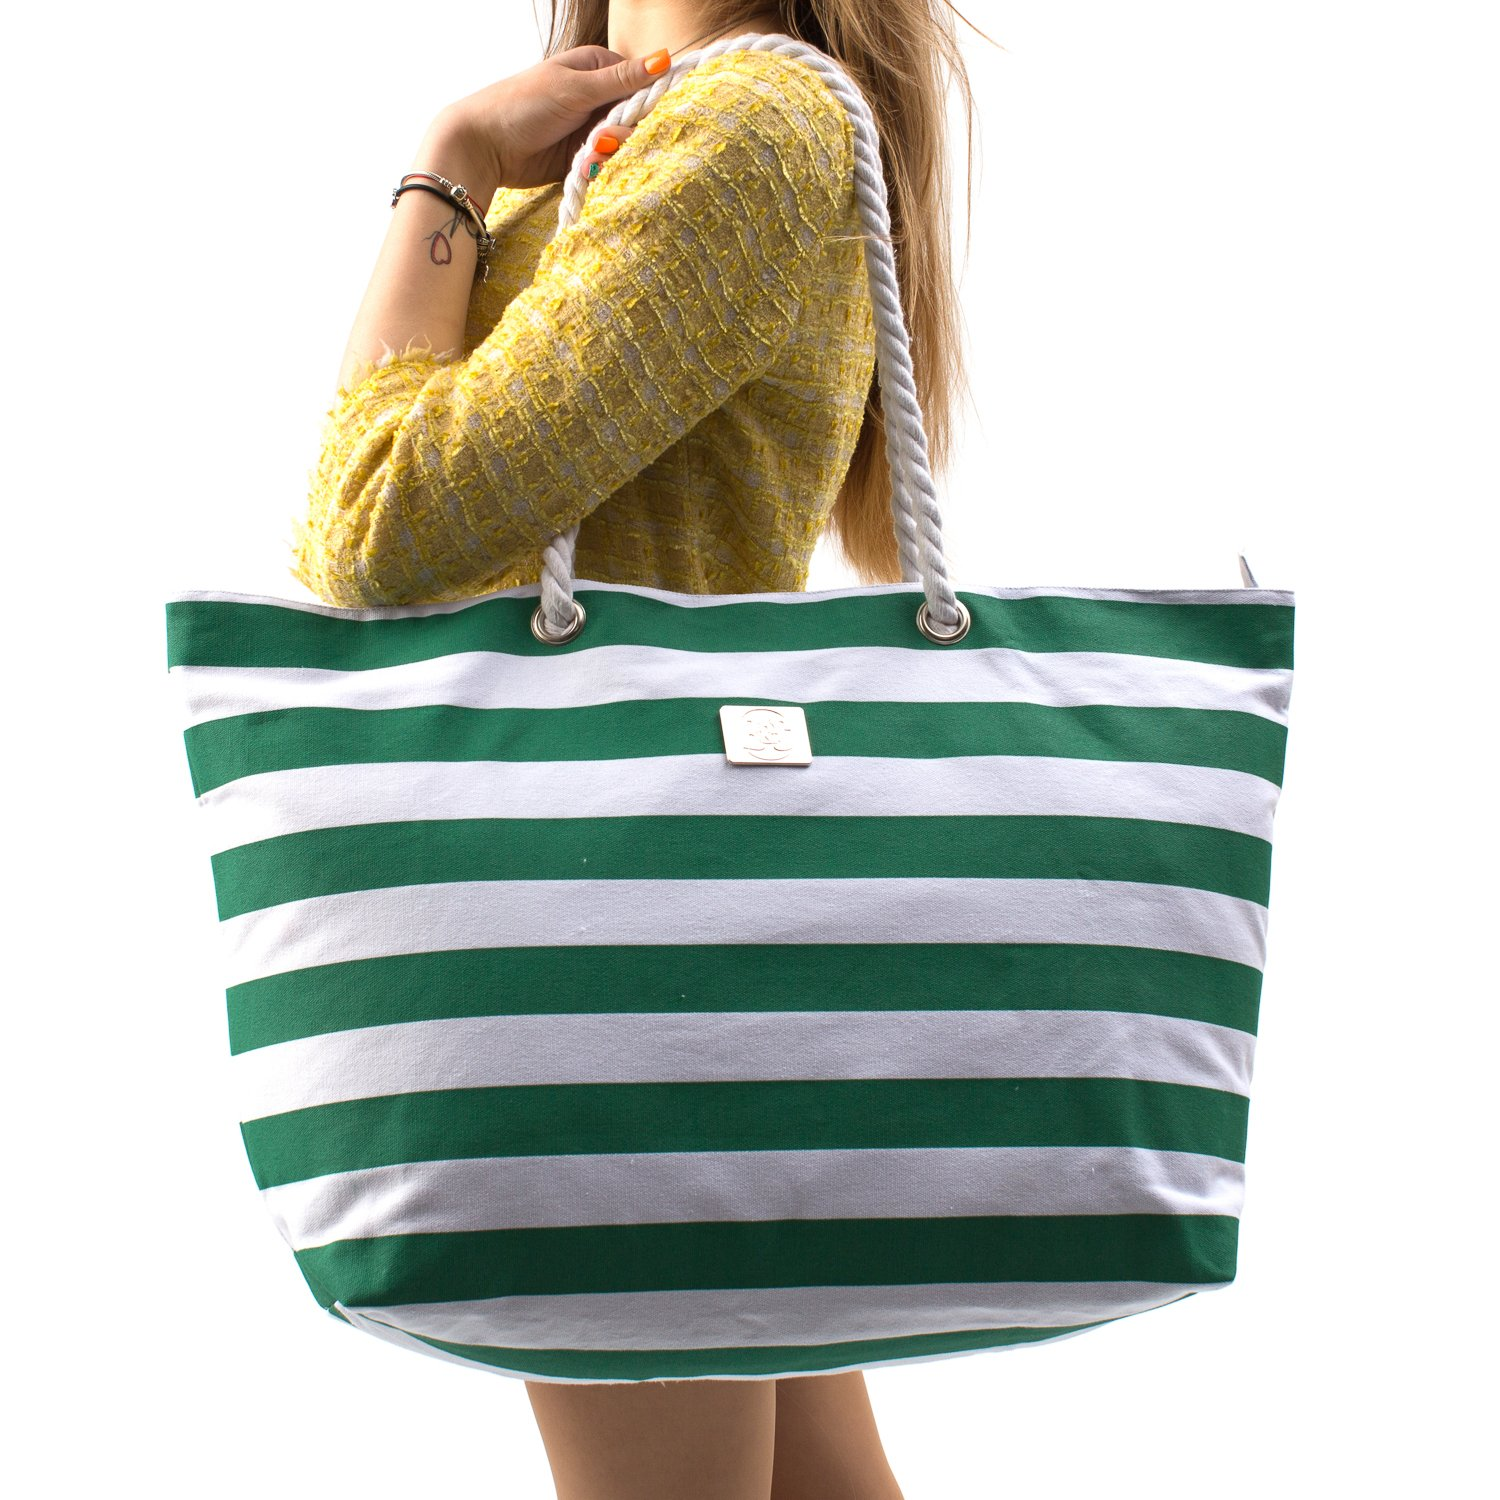 Large Canvas Beach Bag - Perfect Tote Bag For Holidays (Green)